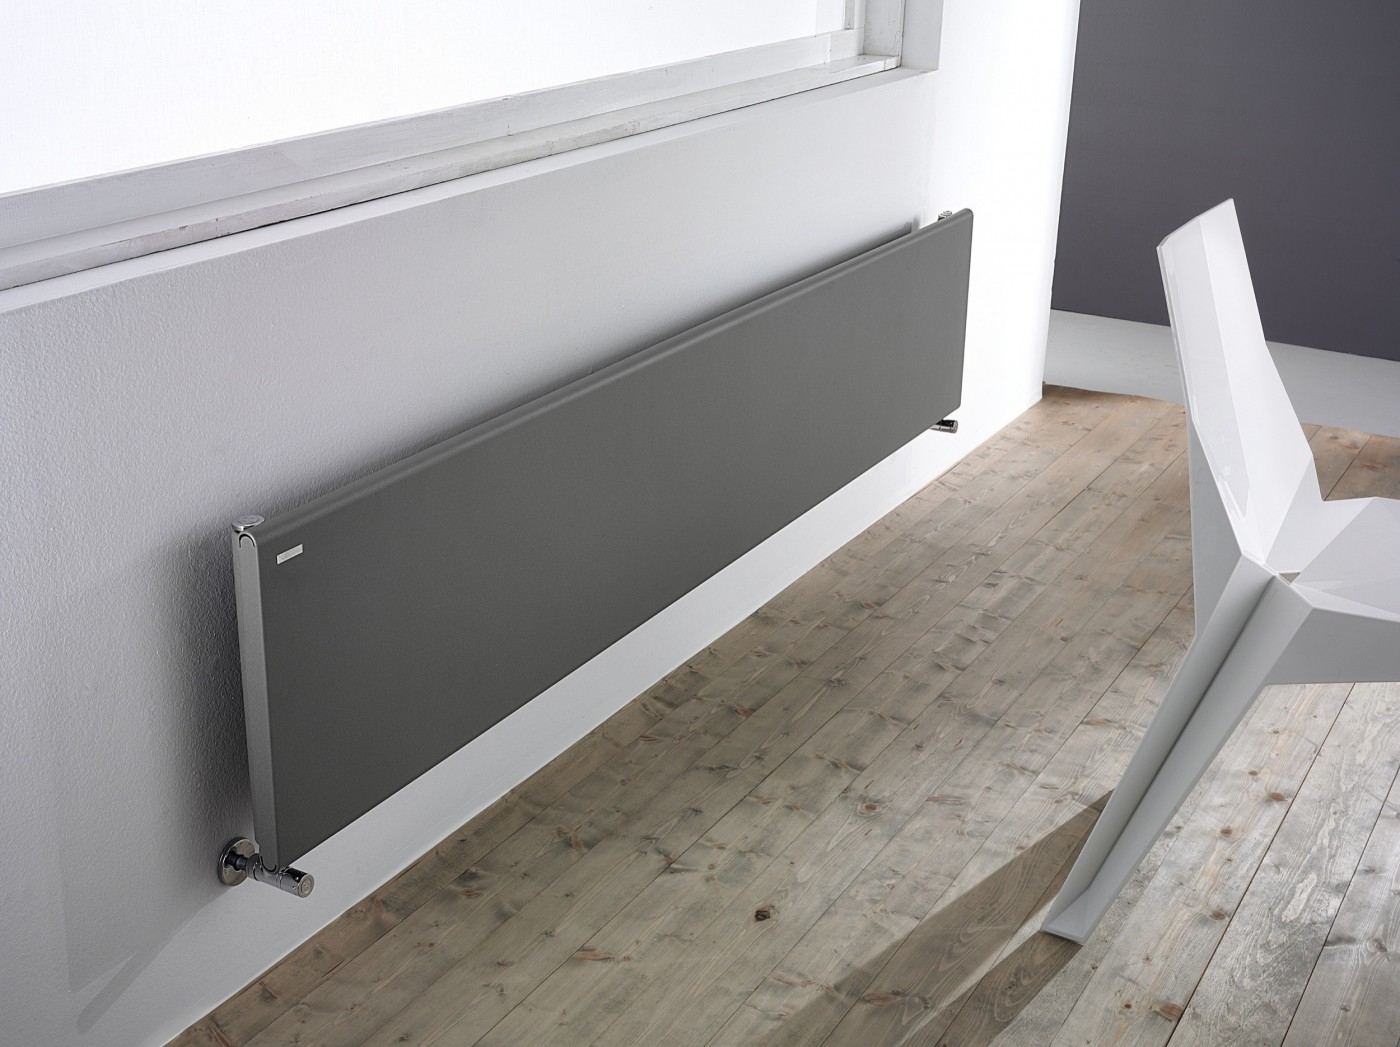 Iconic designer radiators tif horizontal radiator for Termosifoni da arredo